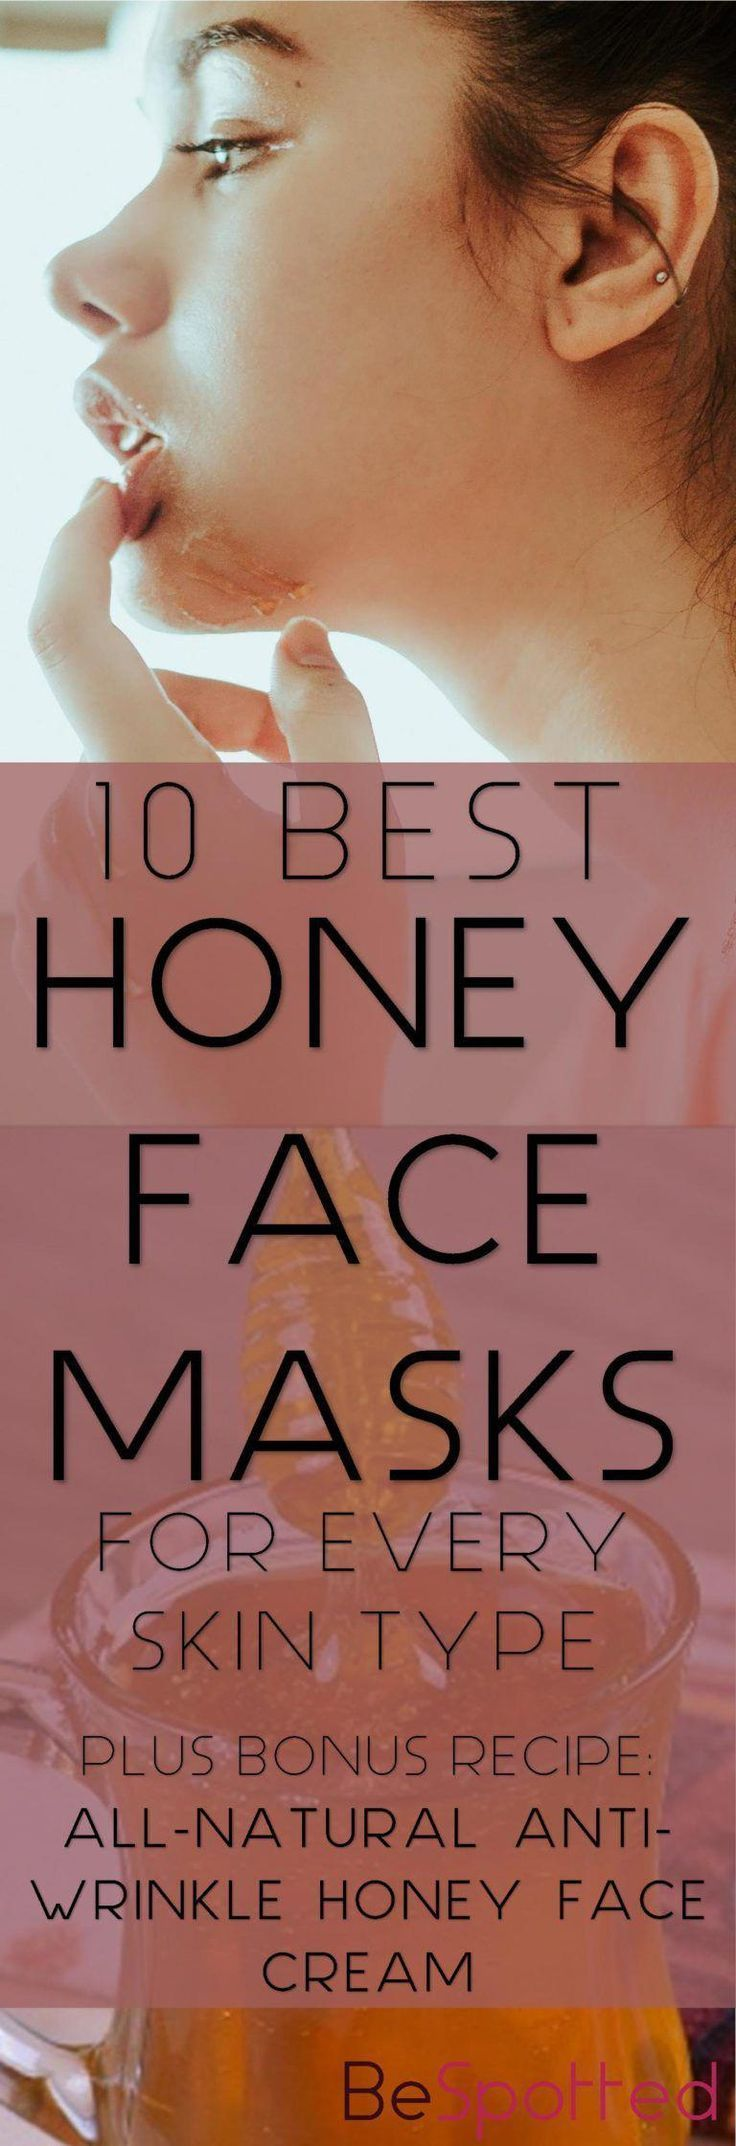 homemade face masks before bed #Homemadefacemasks – #bed #Face #Homemade #Homema…  –  Hautpflege-Rezepte